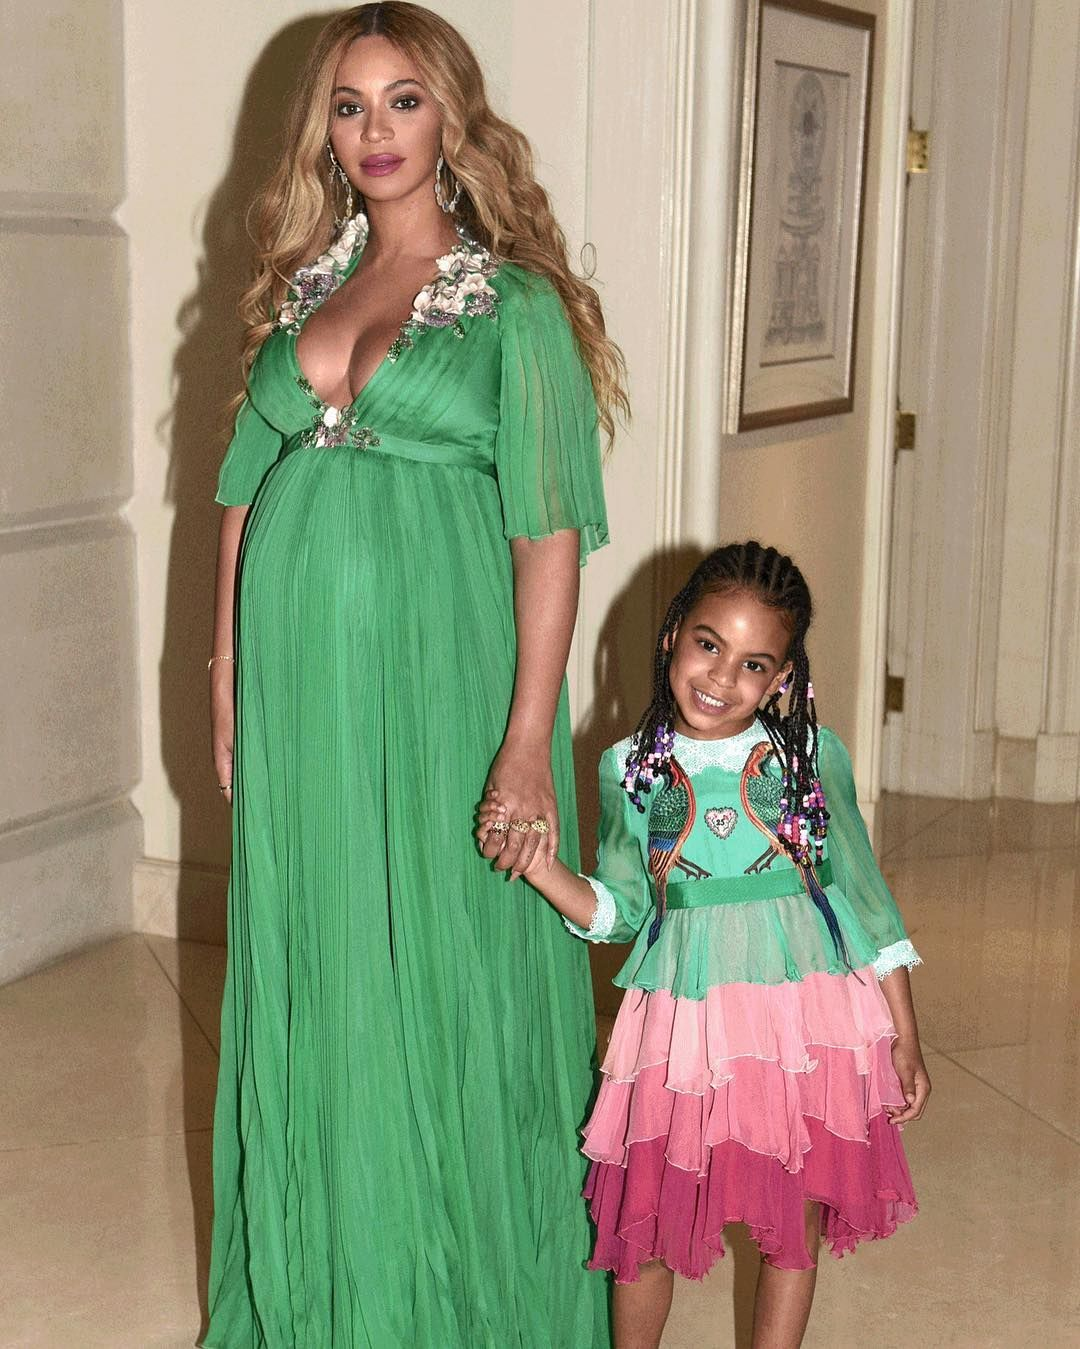 66641969748 INSTADAILY  Beyonce   Blue Ivy Wore Matching Green Dresses To The ...